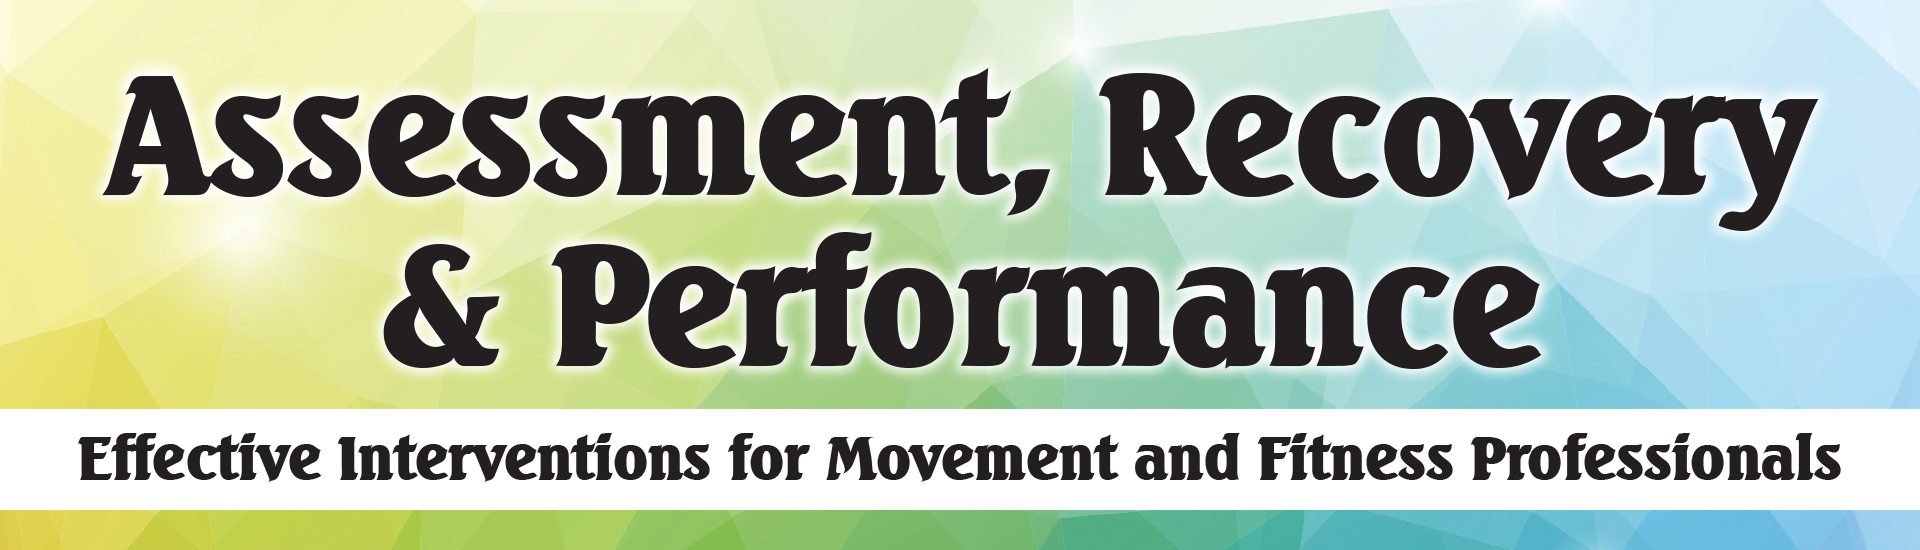 Assessment, Recovery & Performance: Effective Interventions for Movement and Fitness Professionals